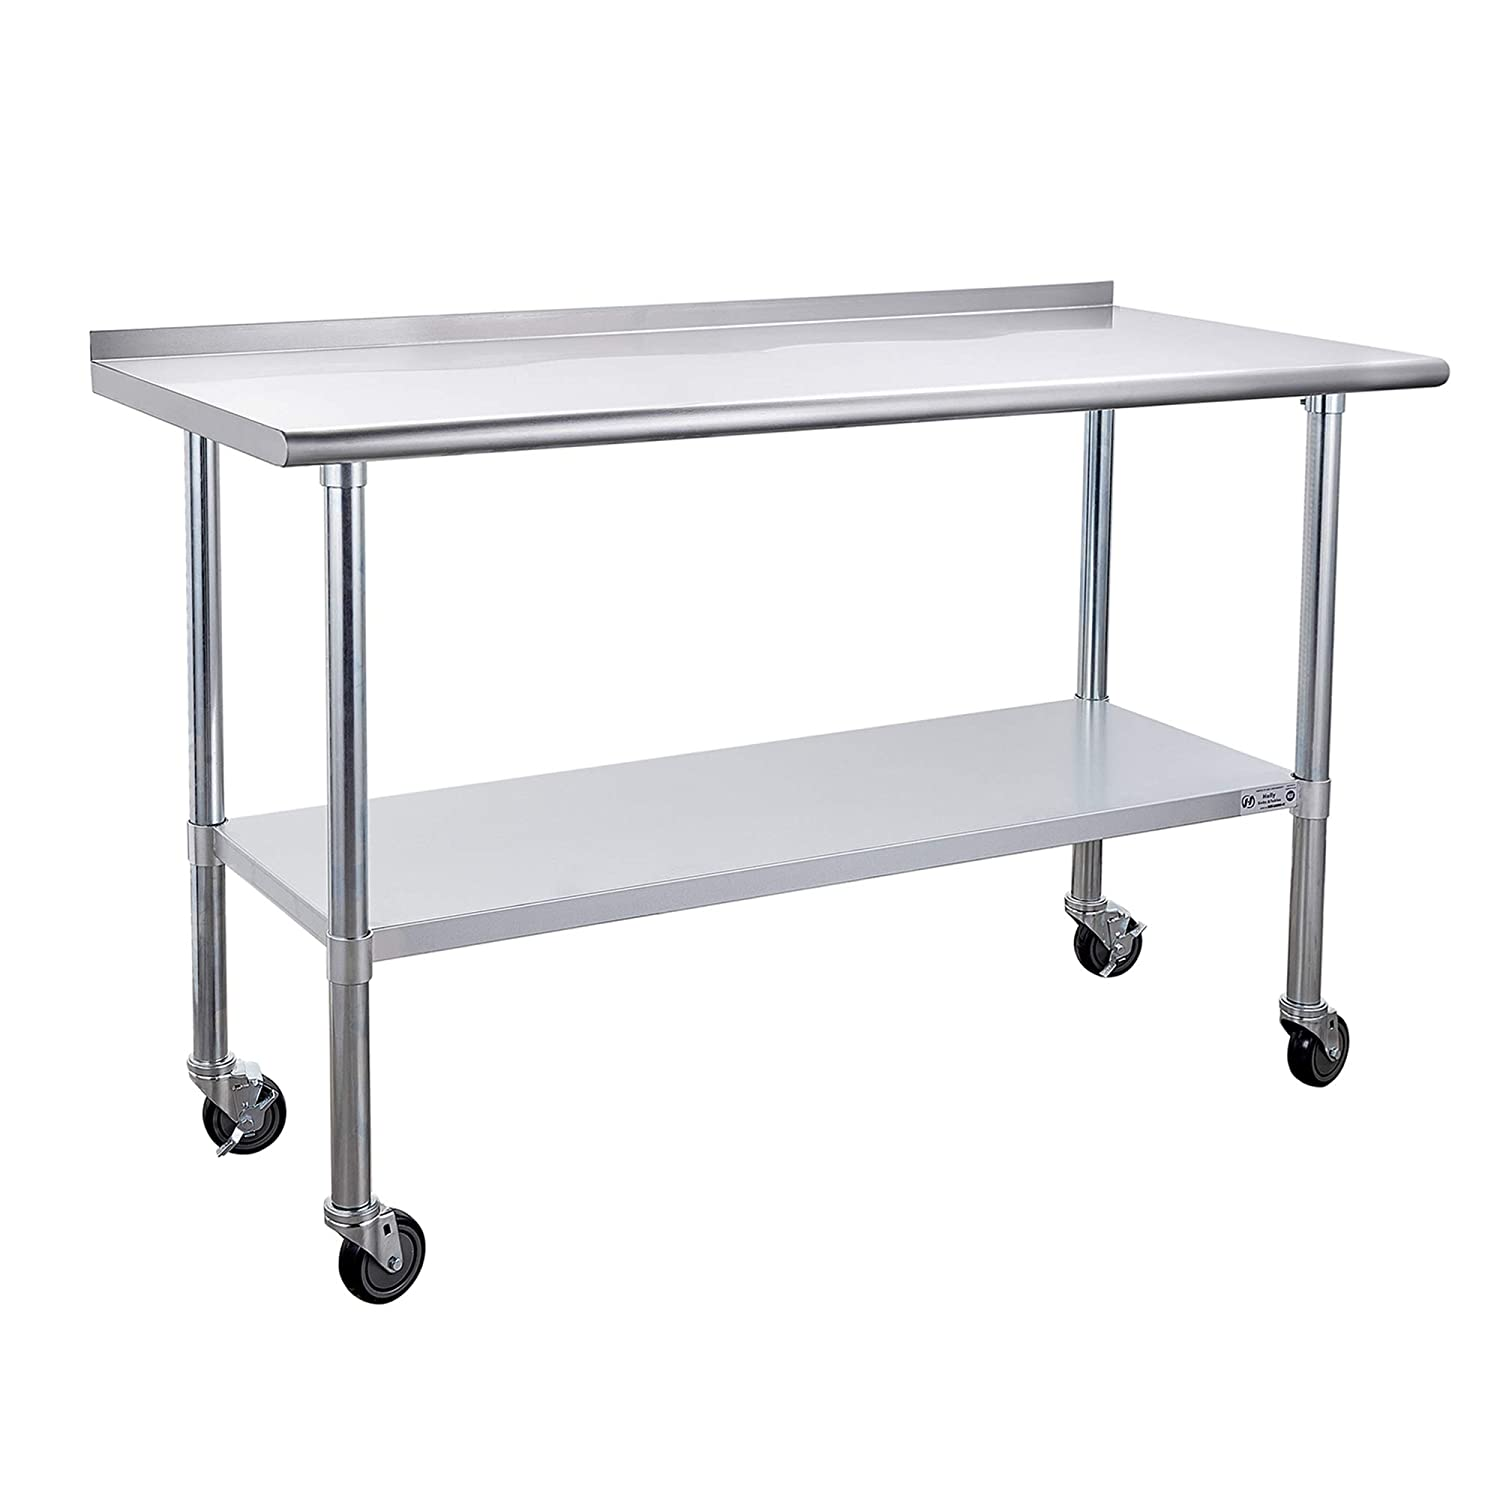 Stainless Steel Fashion Table for Prep Work Caster Inches x 60 with 24 Genuine